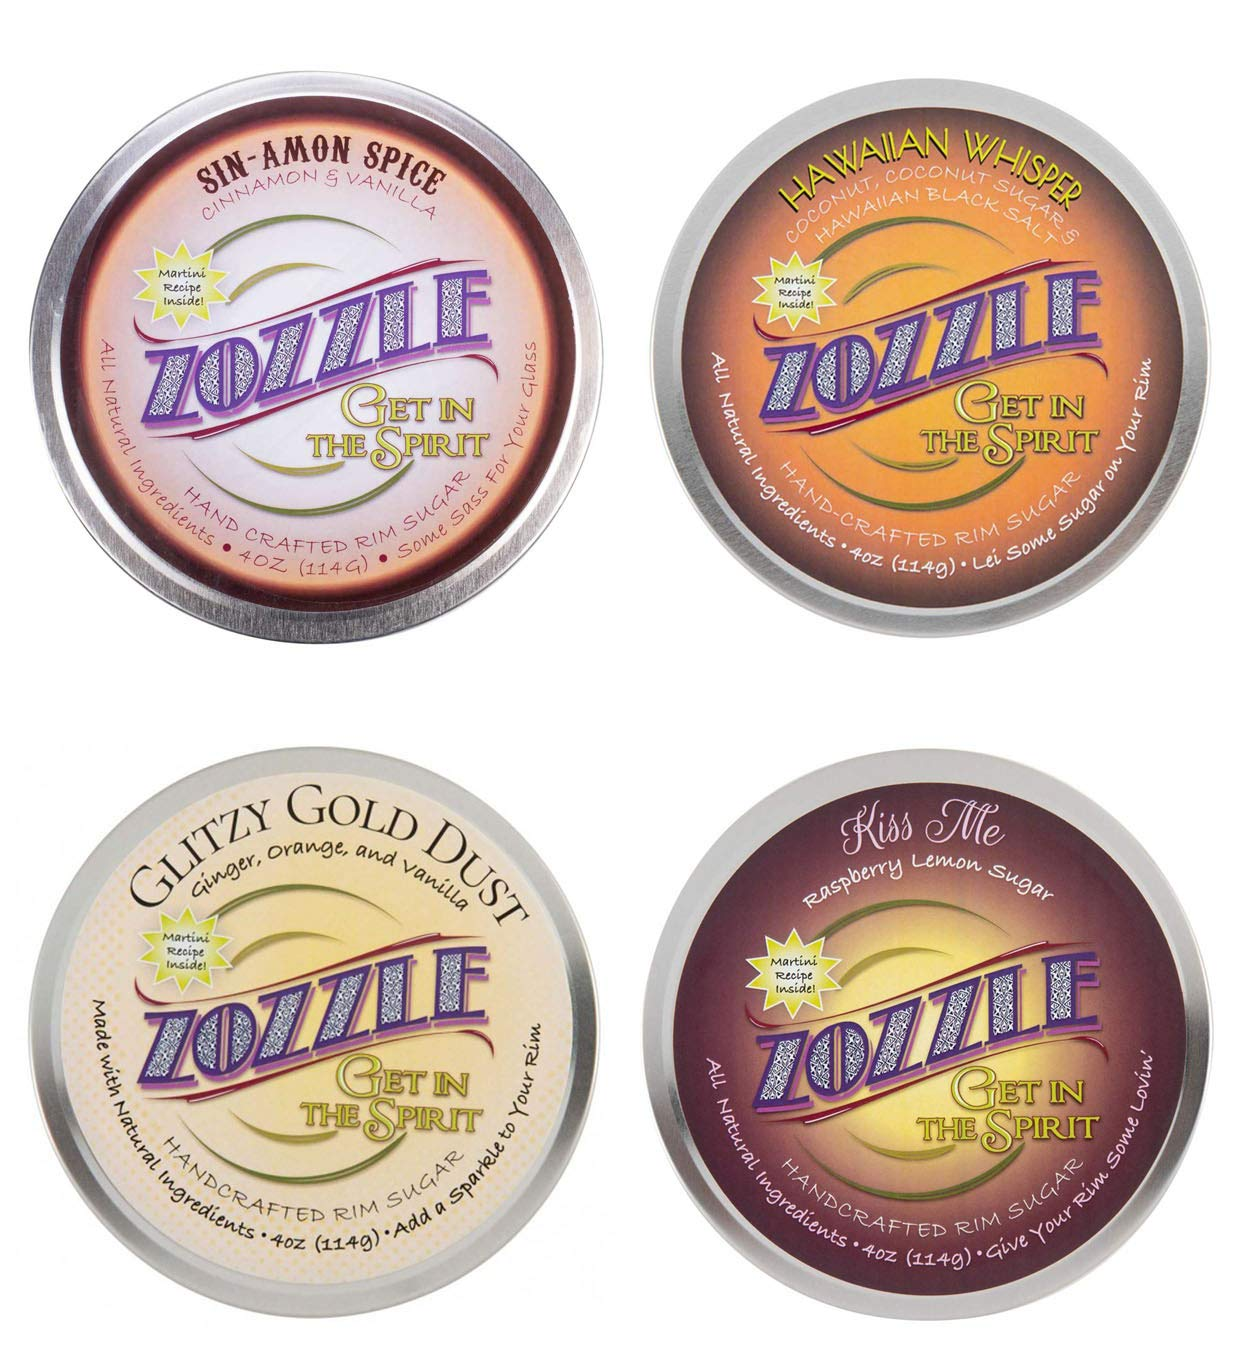 Zozzle Handcrafted Rimming Sugar 4 oz Variety 4-Pack - Ginger Orange, Coconut, Raspberry Lemon, Cinnamon by Zozzle